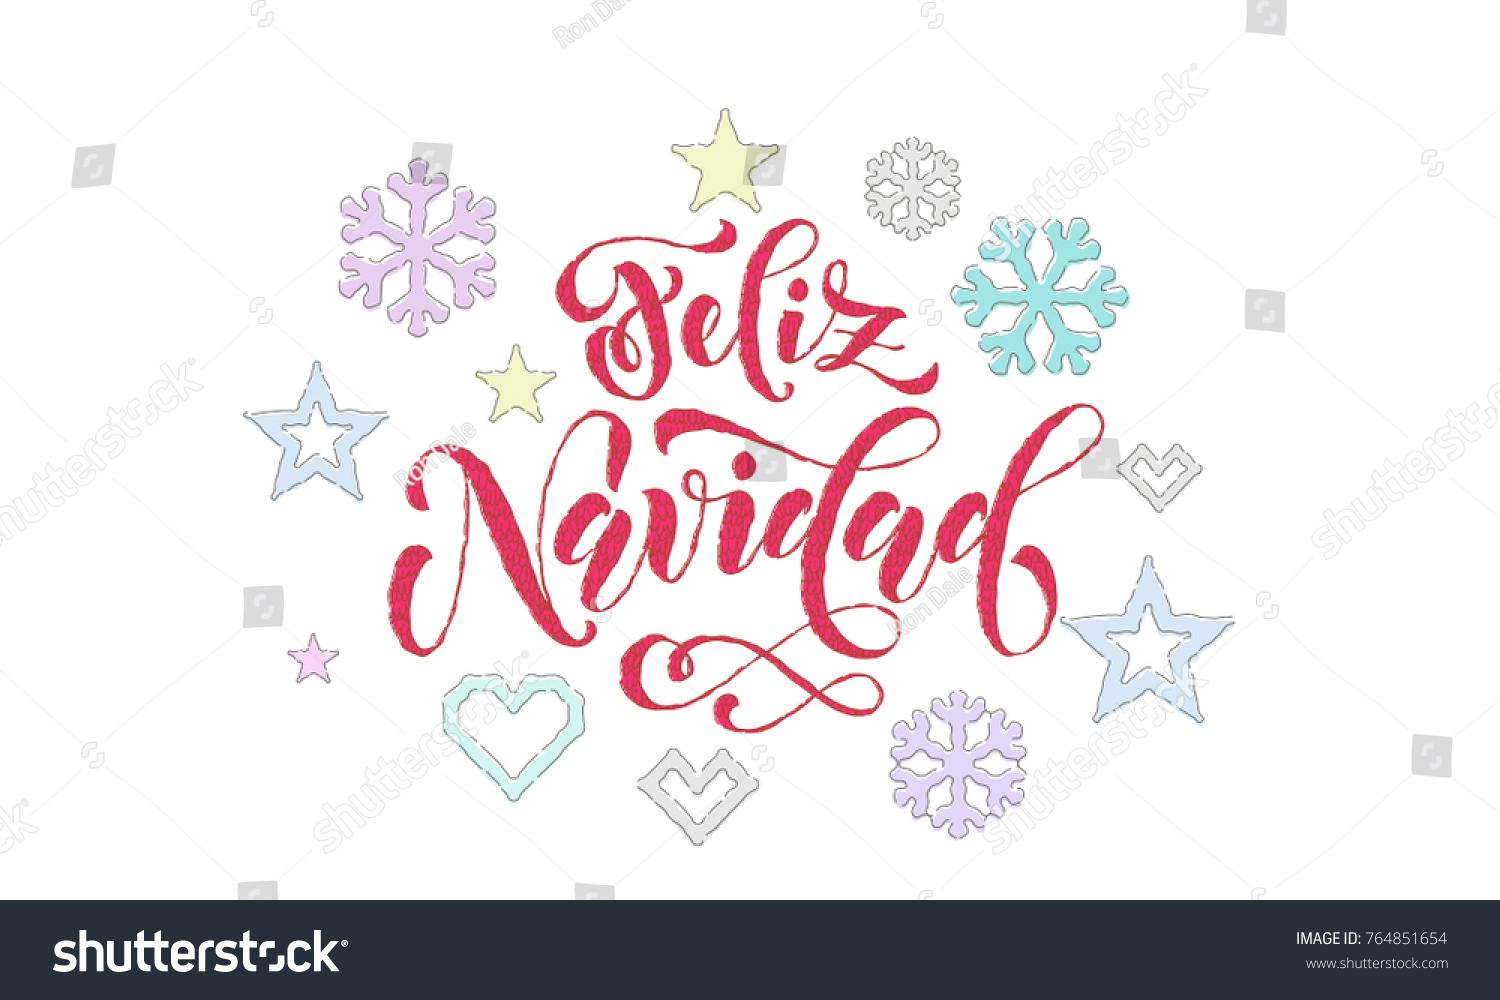 Feliz navidad spanish merry christmas knitted stock vector feliz navidad spanish merry christmas knitted stock vector 764851654 shutterstock kristyandbryce Images